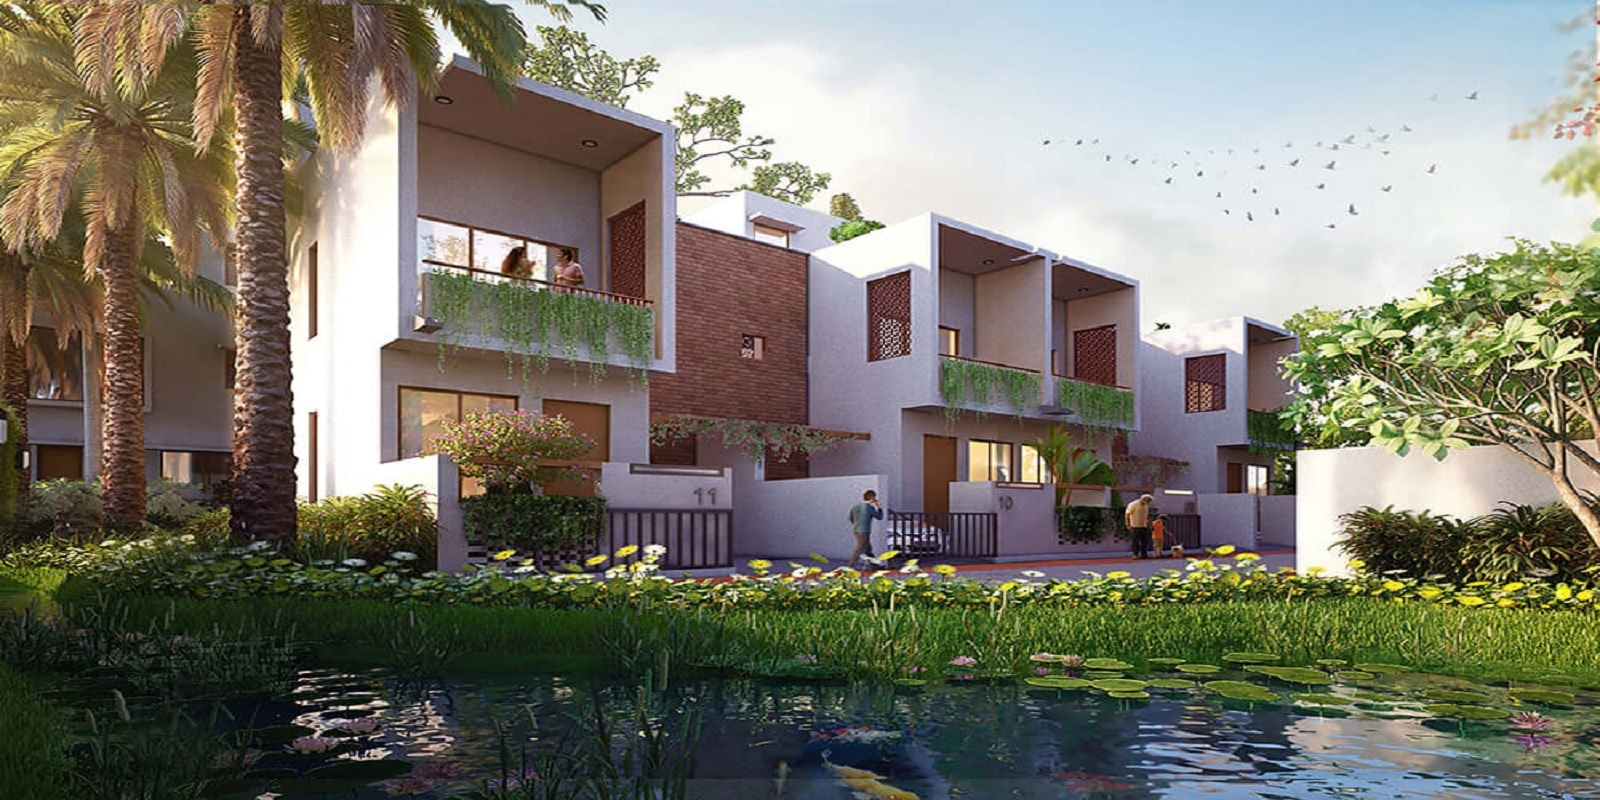 rajat southern vista project project large image1